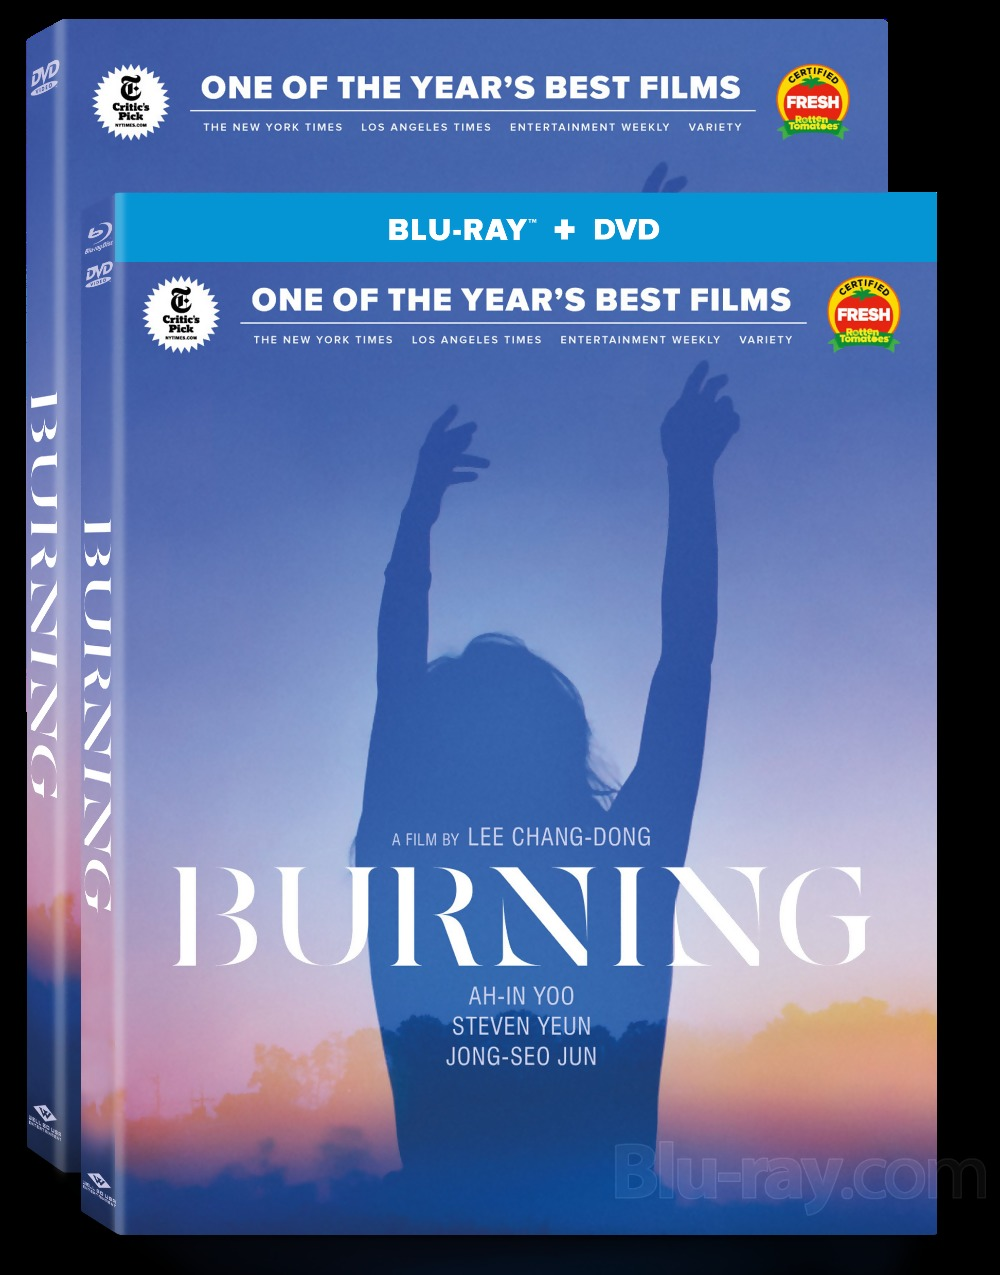 Well Go USA: Lee Chang-dong's Burning Heading to Blu-ray